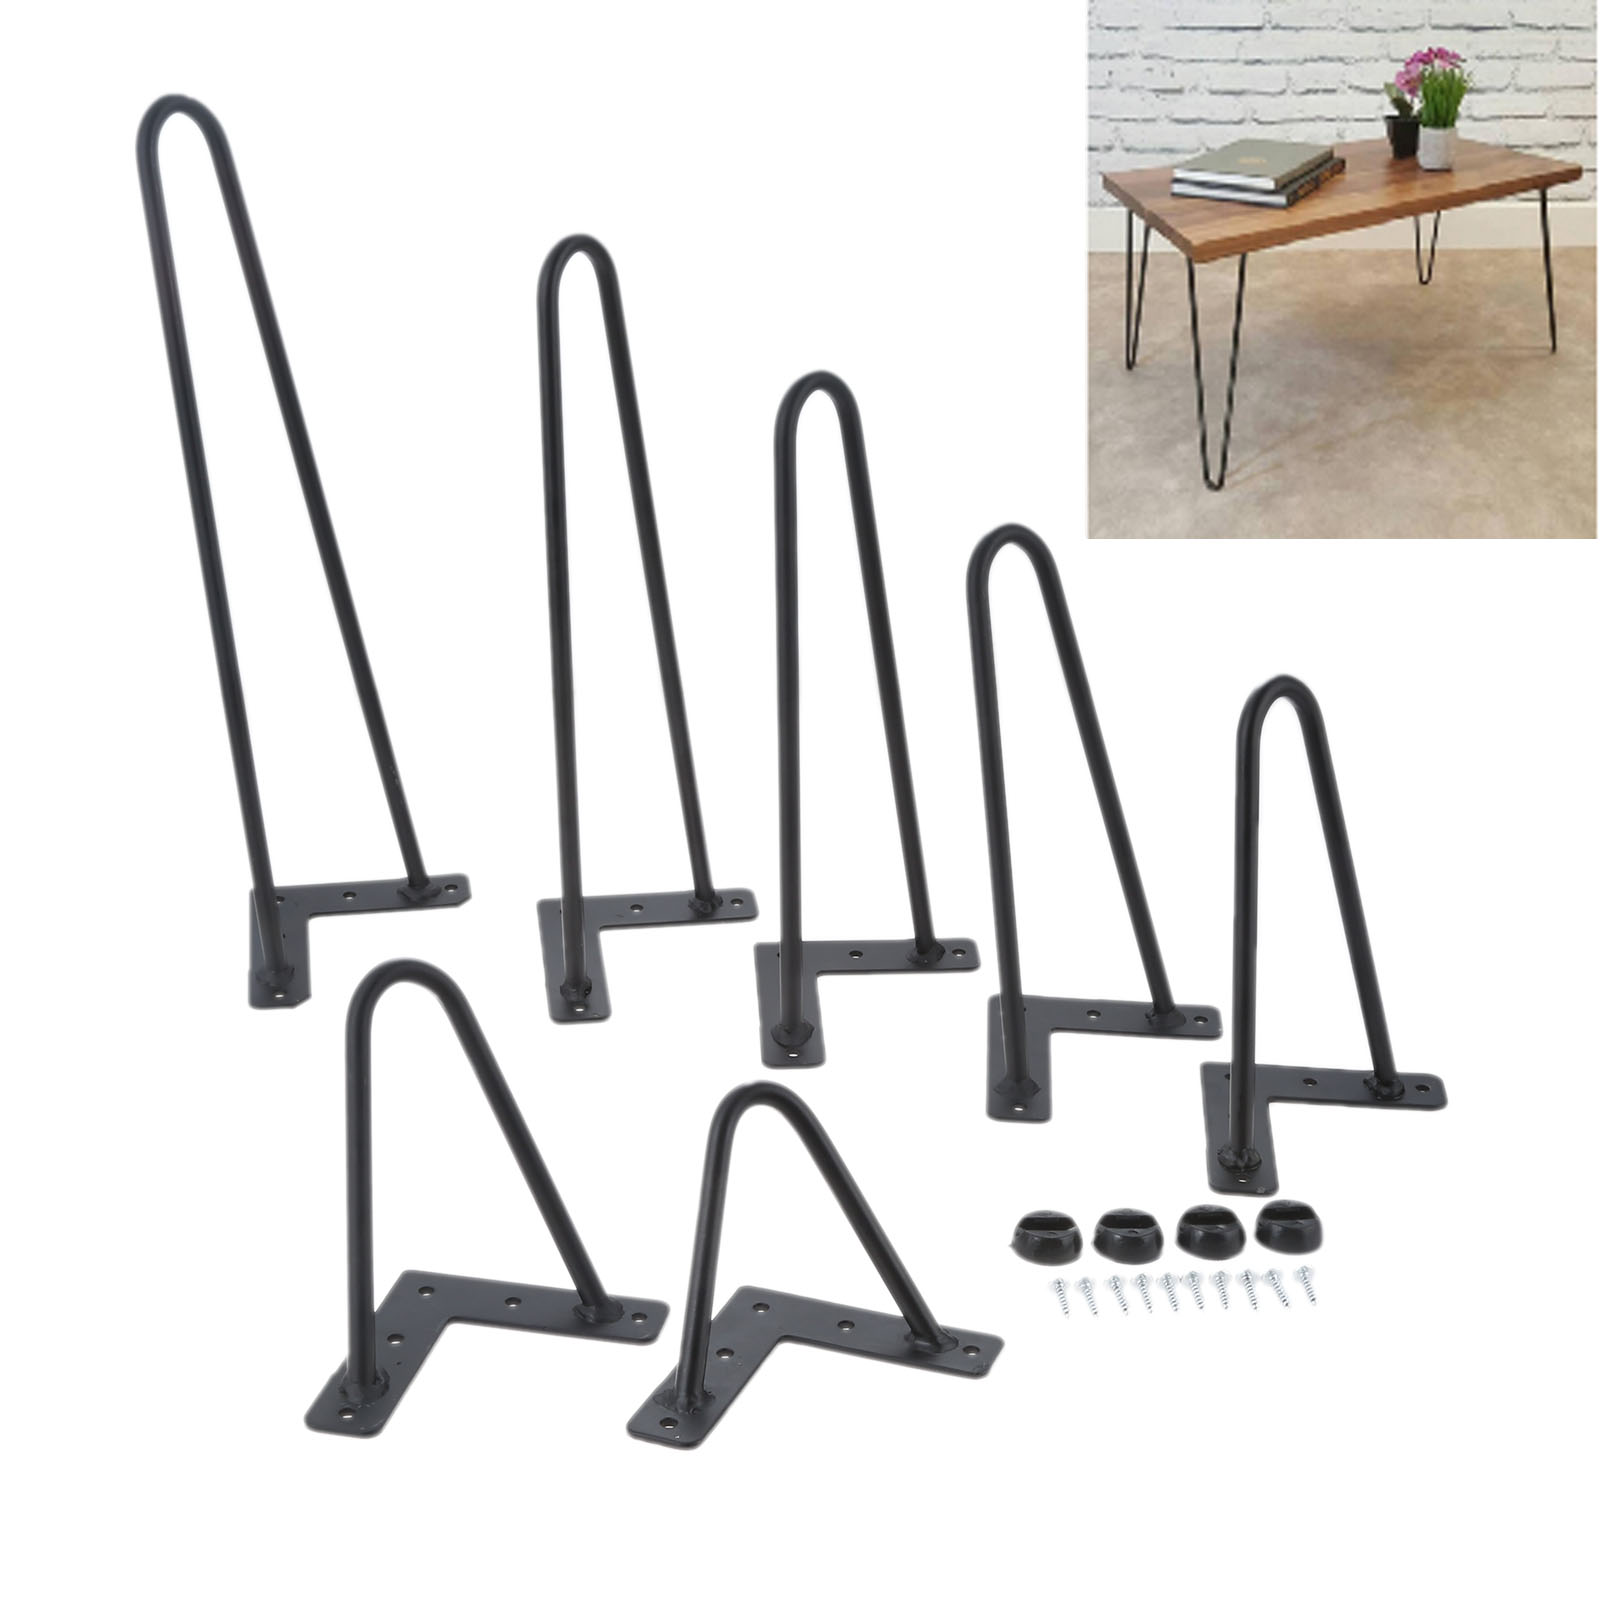 4Pcs Iron Metal Table Desk Legs For DIY Handcrafts Furniture 4/6/8/10/12/14/16inch Sofa Coffee Desk Furniture Kitchen Table Leg